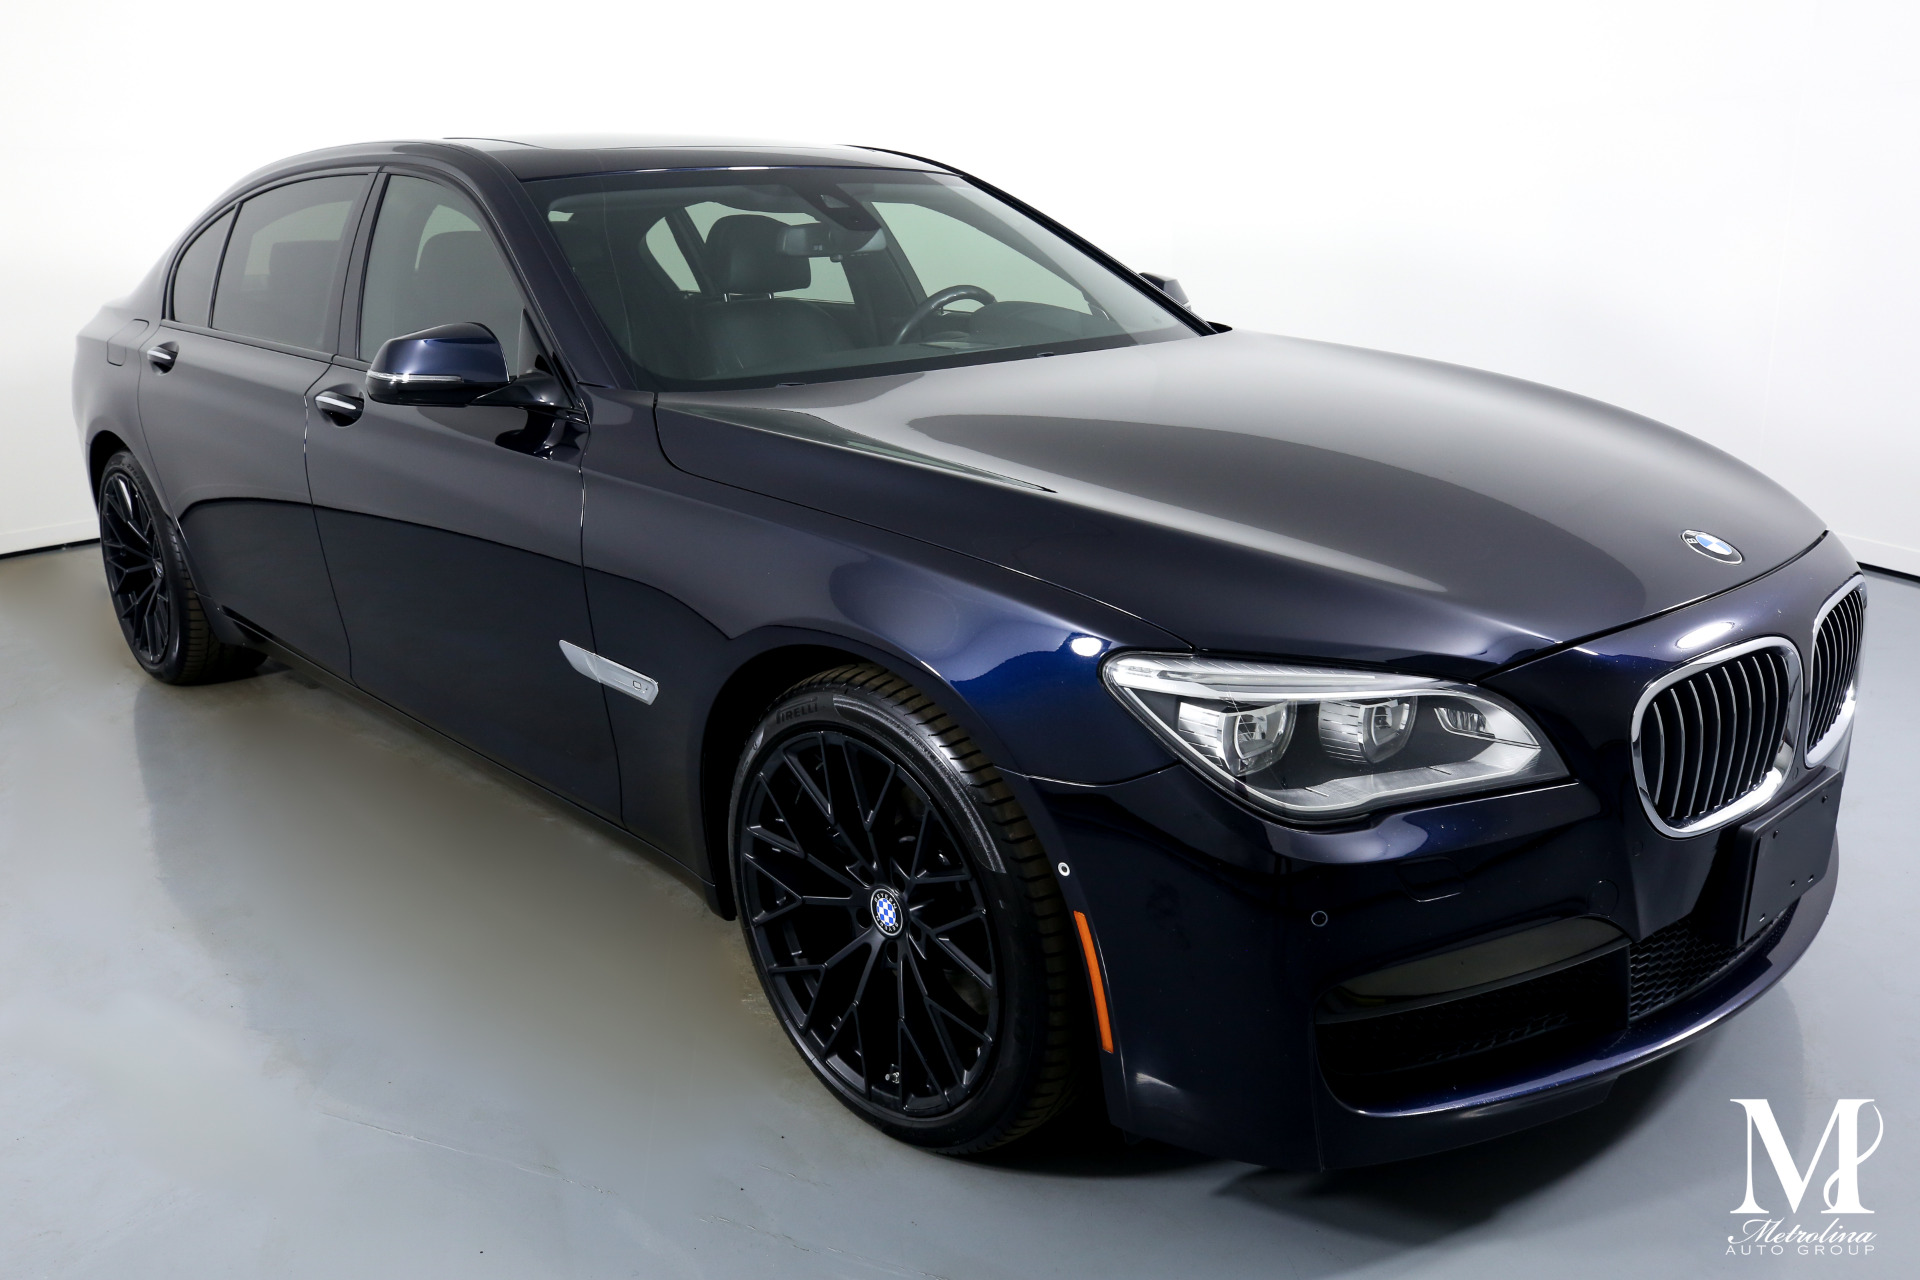 Used 2013 BMW 7 Series 750Li for sale Sold at Metrolina Auto Group in Charlotte NC 28217 - 2